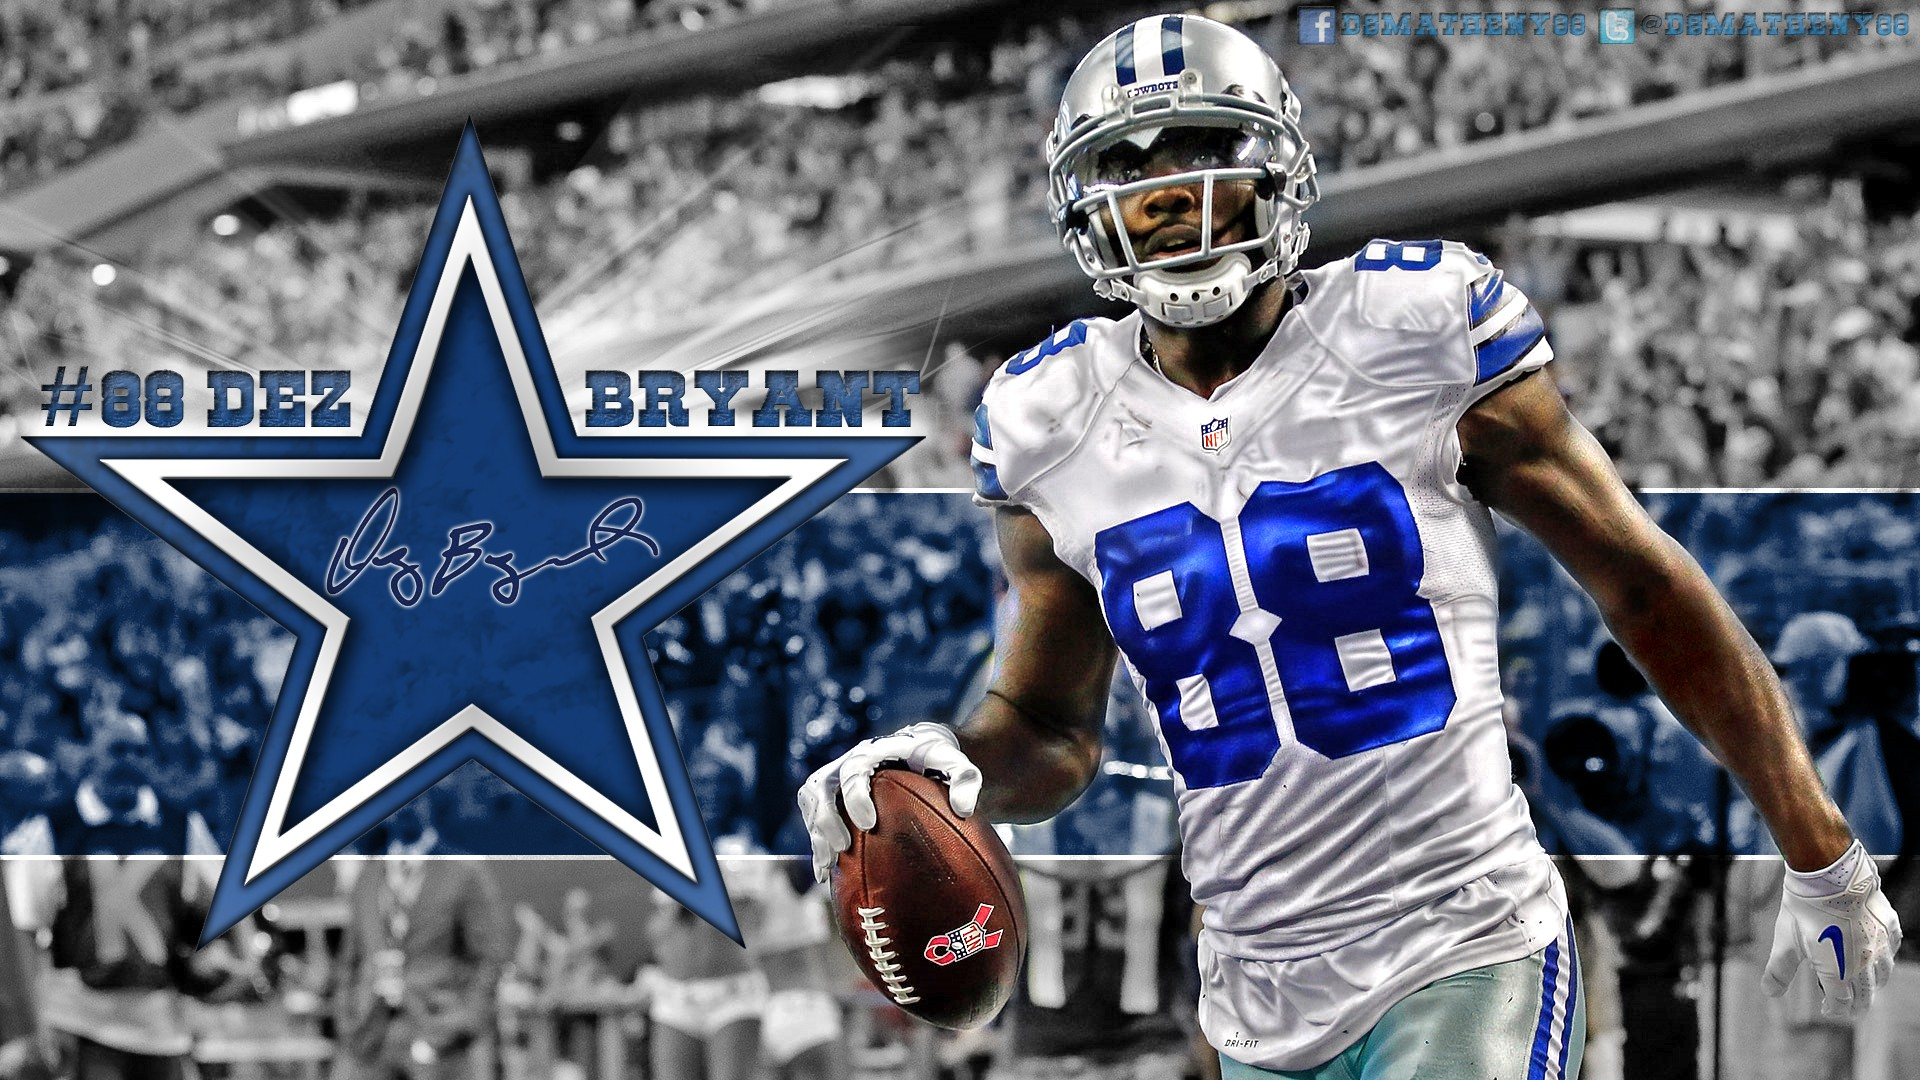 Dez Bryant Wallpaper ·① Download Free Awesome High